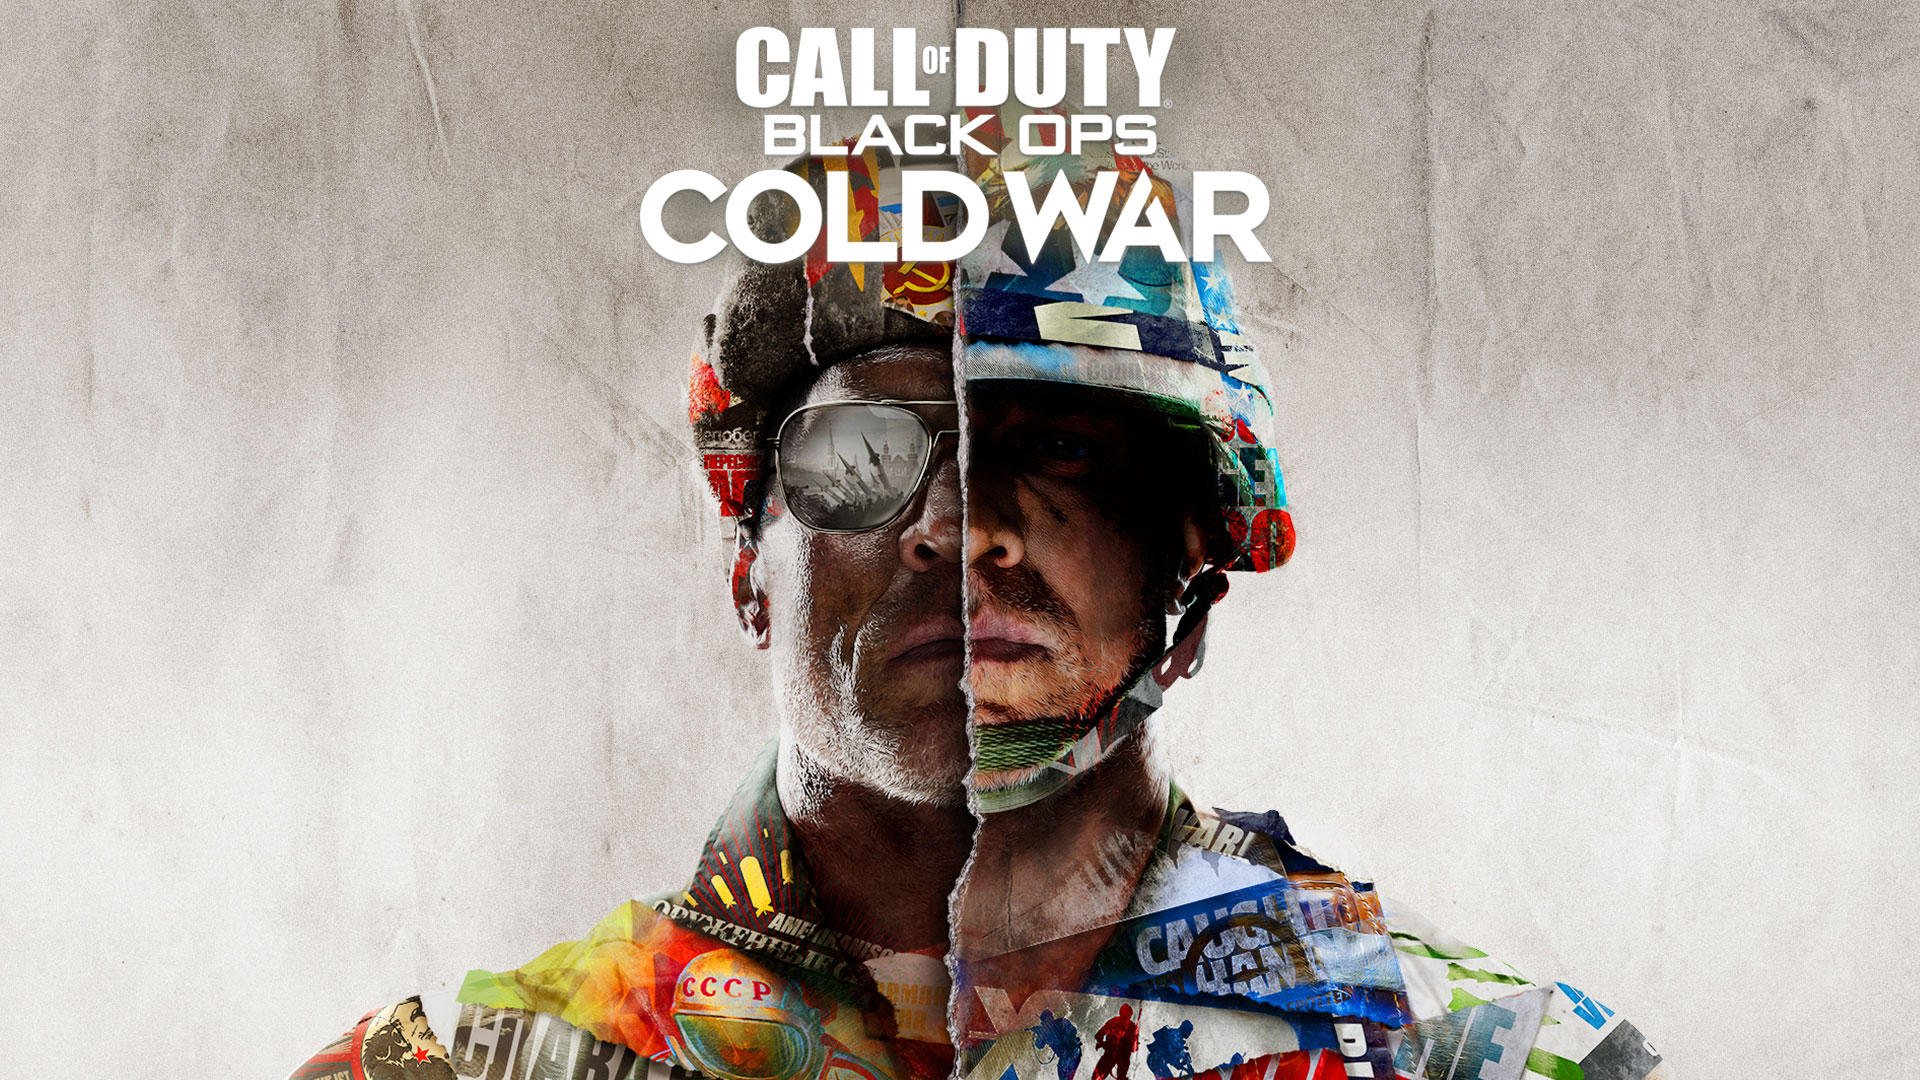 Call of Duty - Black Ops Cold War: Did you get this game as a gift? Discover our walkthrough